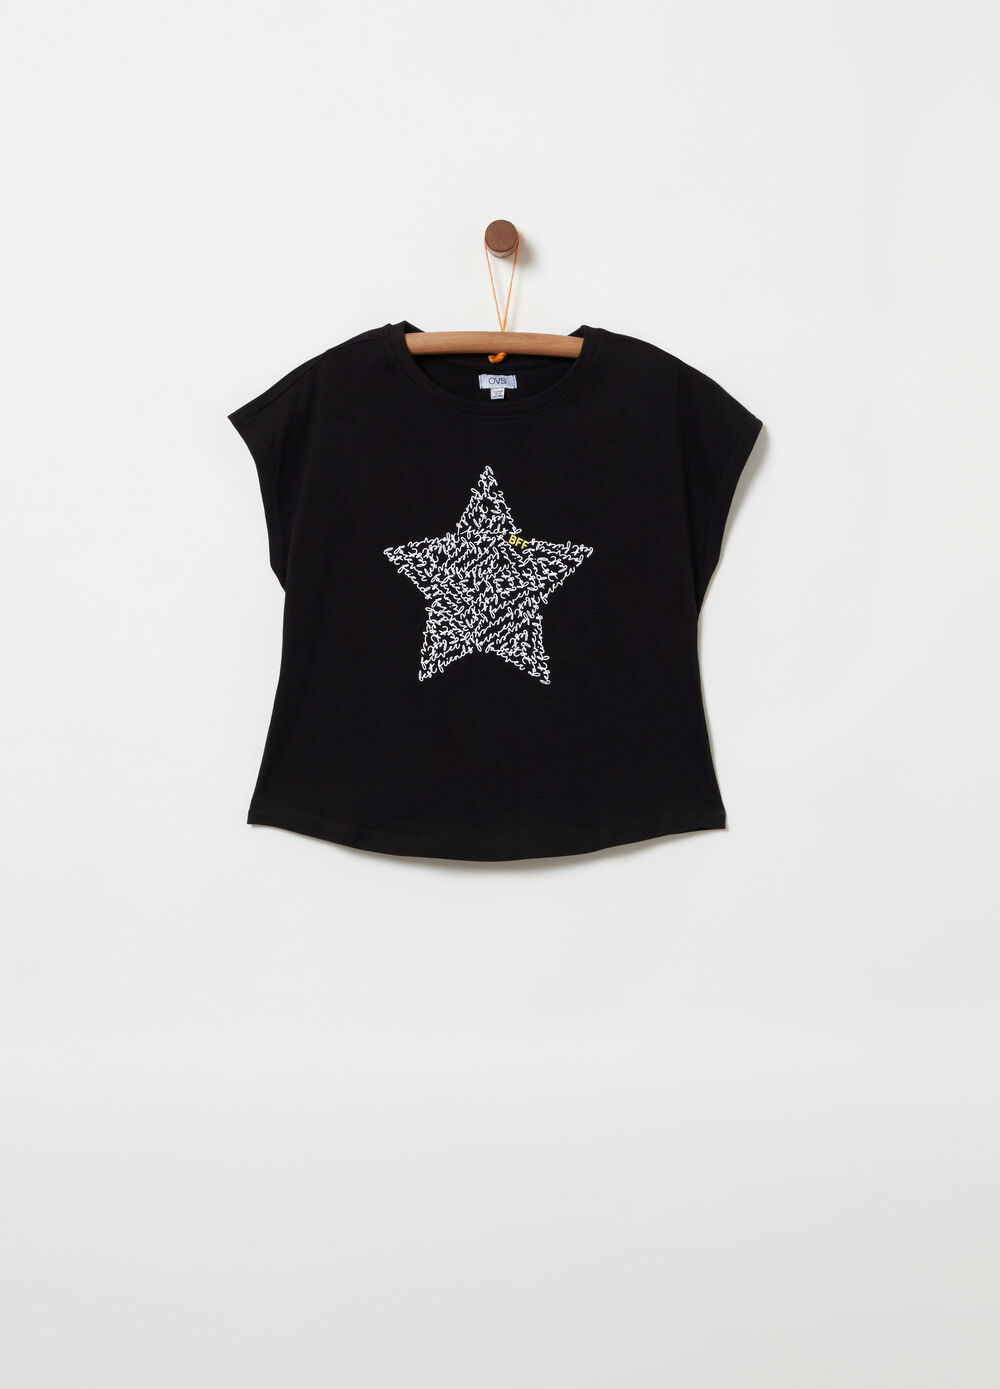 Boxy T-shirt with cap sleeves and print